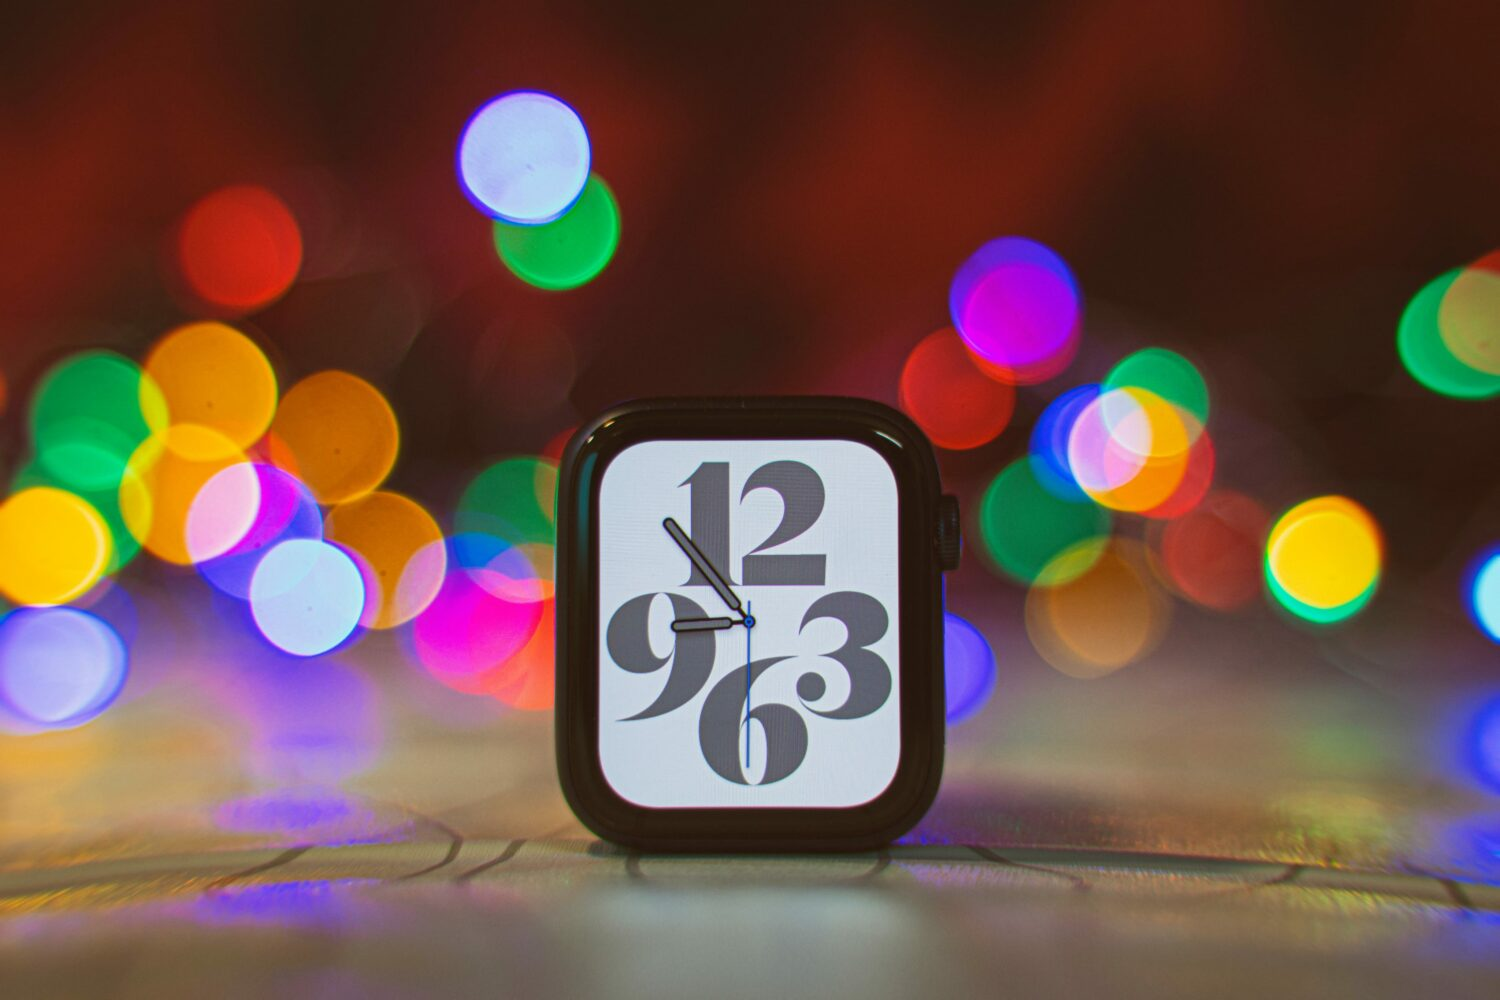 A photograph showing an Apple Watch Series 6 case sitting upright on a table, with a colorful lights in the background blurred with a depth-of-field effect